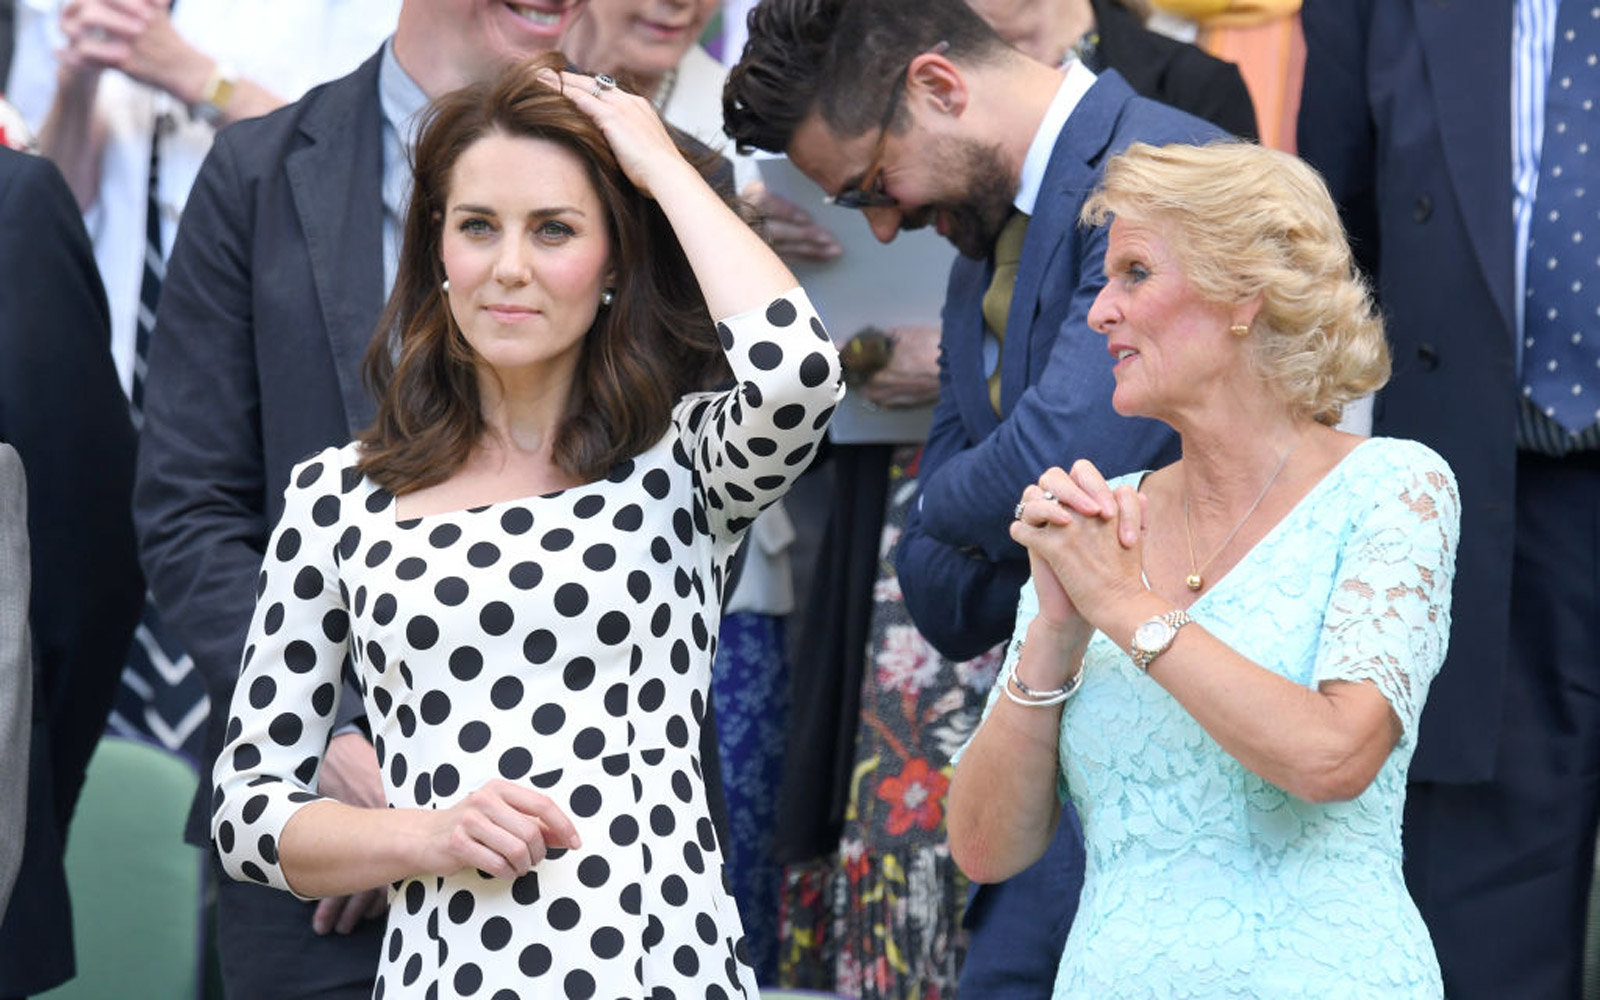 LONDON, ENGLAND - JULY 03:  Catherine, Duchess of Cambridge and Gill Brook attend day one of the Wimbledon Tennis Championships at Wimbledon on July 3, 2017 in London, United Kingdom.  (Photo by Karwai Tang/WireImage)